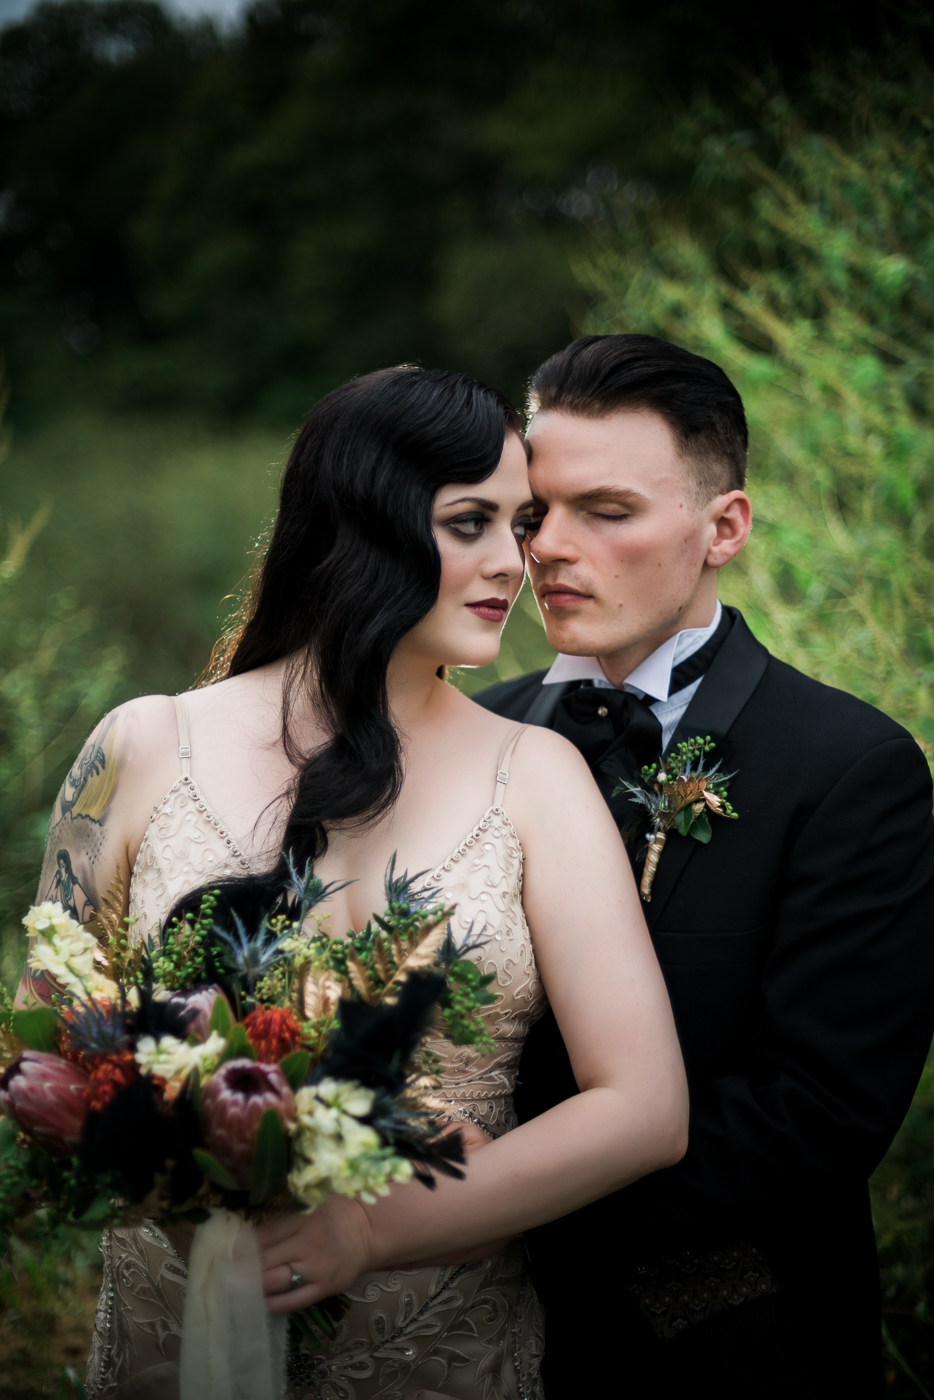 and-how-imaging-gothic-inspired-styled-shoot-gothic-wedding-1920s-theme-wedding-1920s-inspired-styled-shoot-halloween-styled-shoot-gothic-inspired-wedding-45